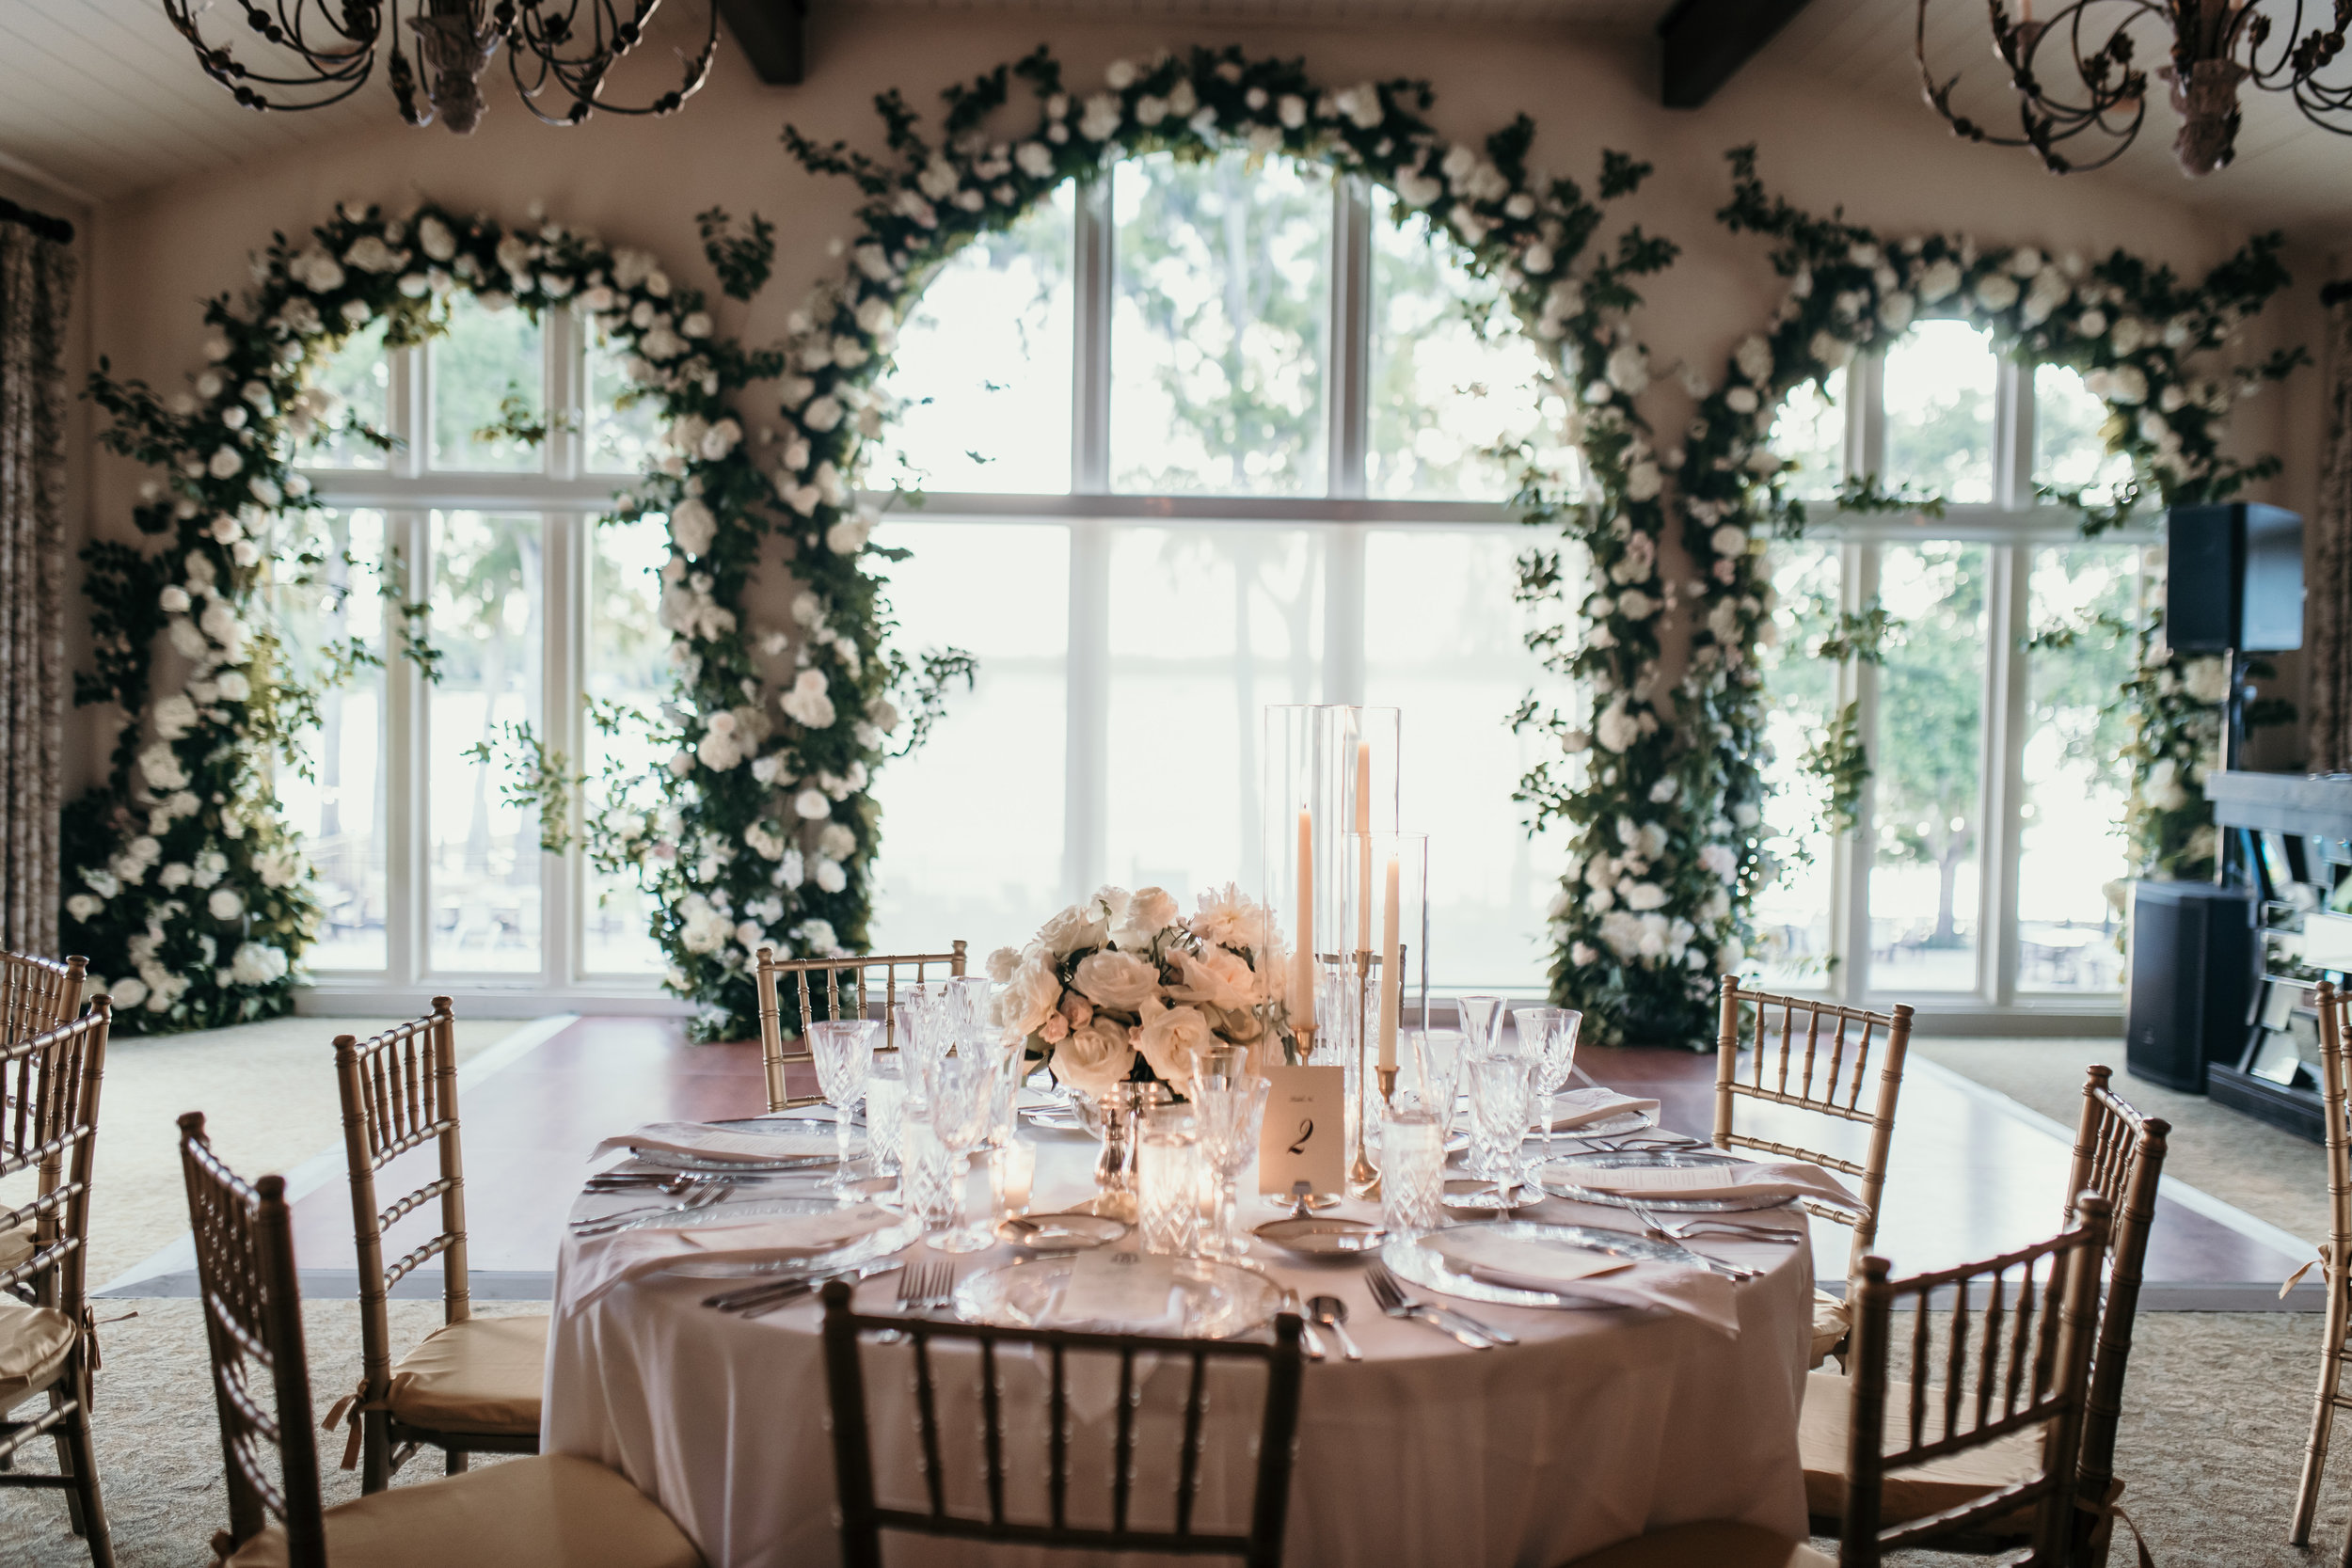 Arch window florals. Winter Park Racquet Club Wedding with Velvet & Twine Florals, Planning by Blue Ribbon Weddings